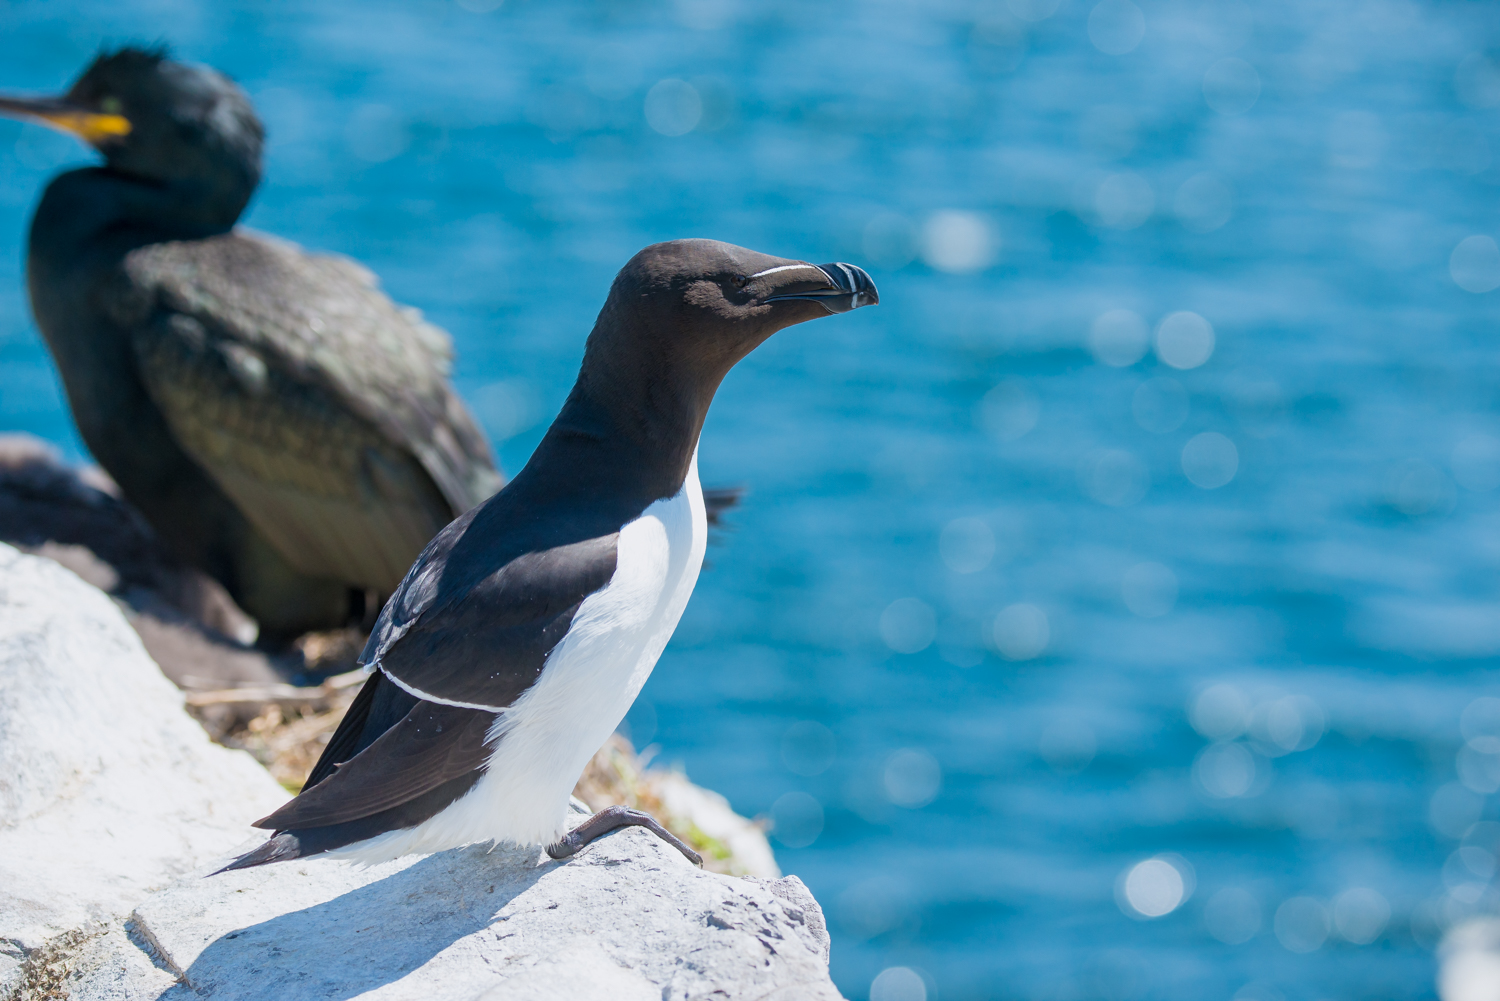 Razorbill, British sea birds, wildlife